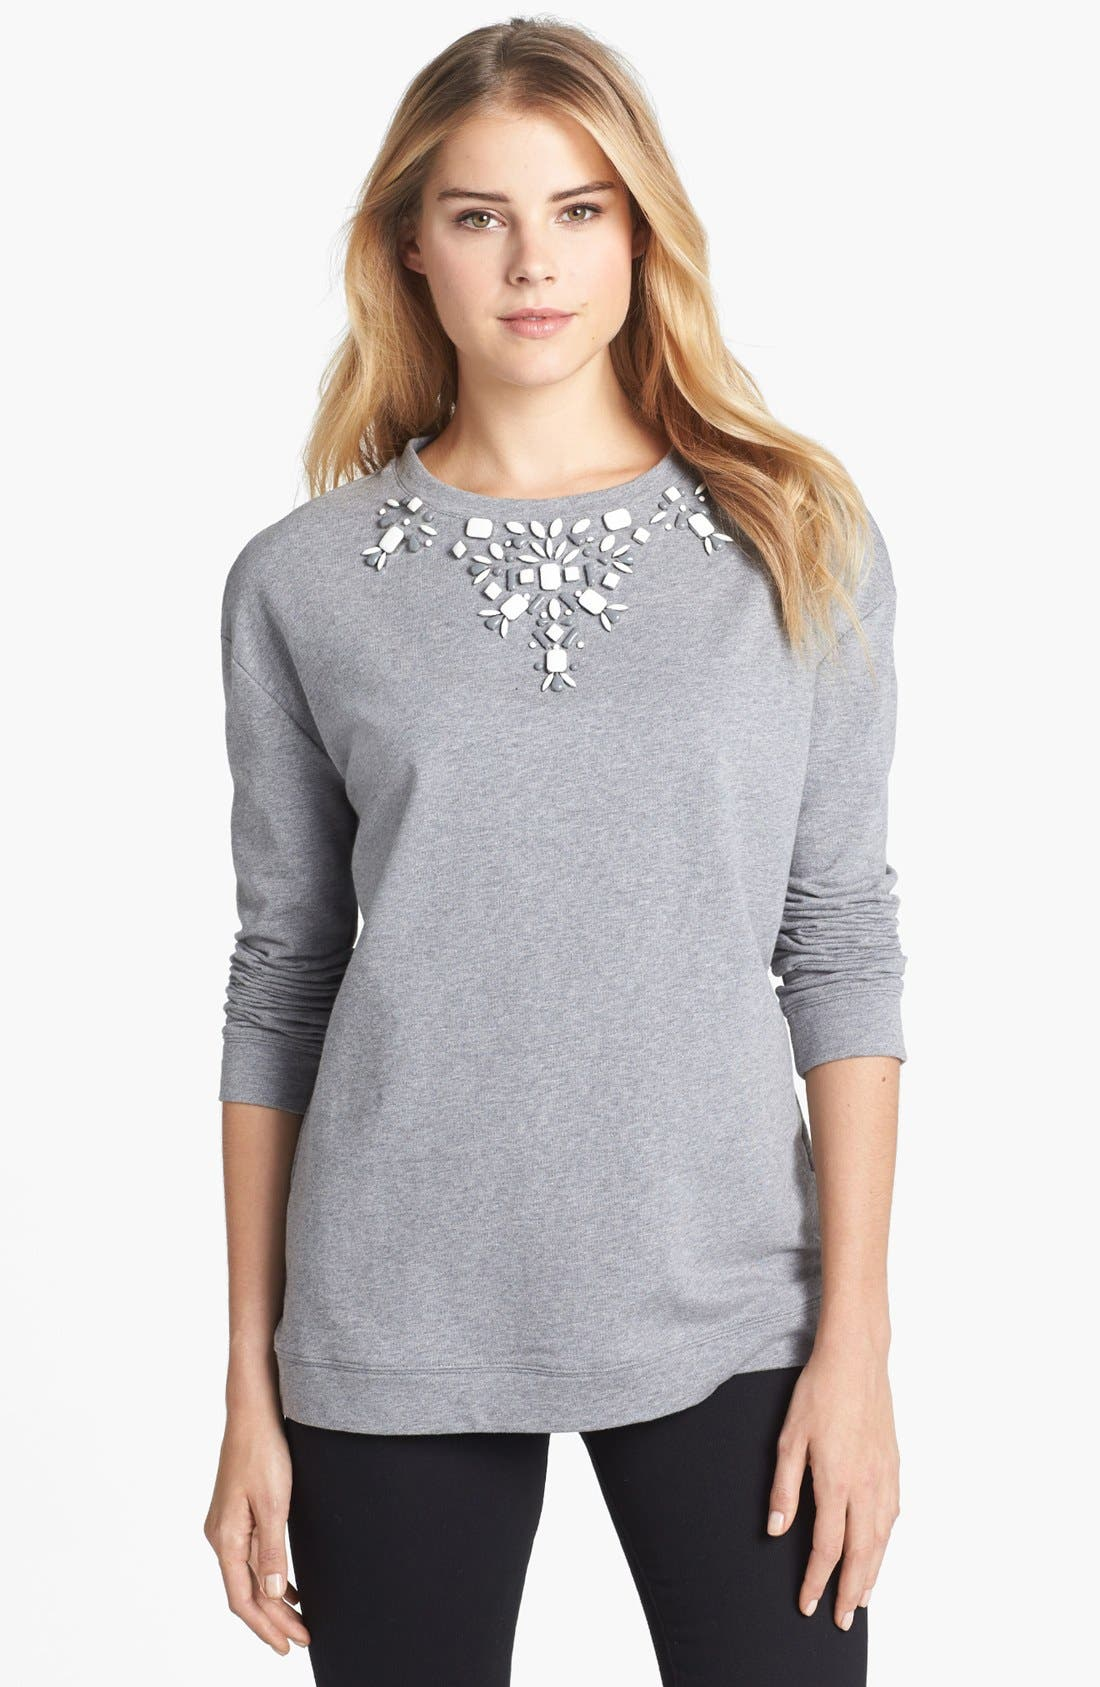 Main Image - Two by Vince Camuto Embellished Necklace Cotton Blend Sweatshirt